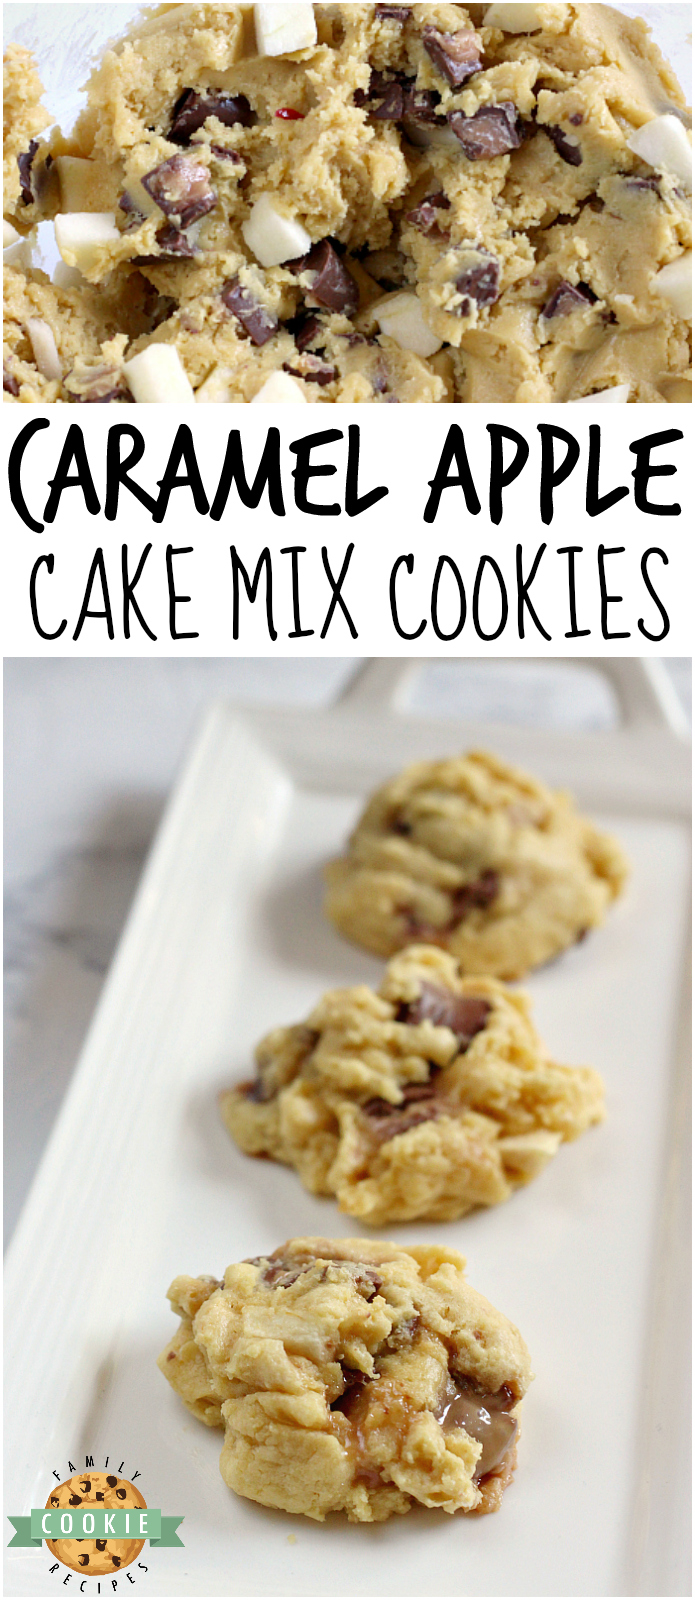 Caramel Apple Cake Mix Cookies are easily made with chopped apples and Rolo candies for a delicious flavor combination that comes together in just a few minutes.